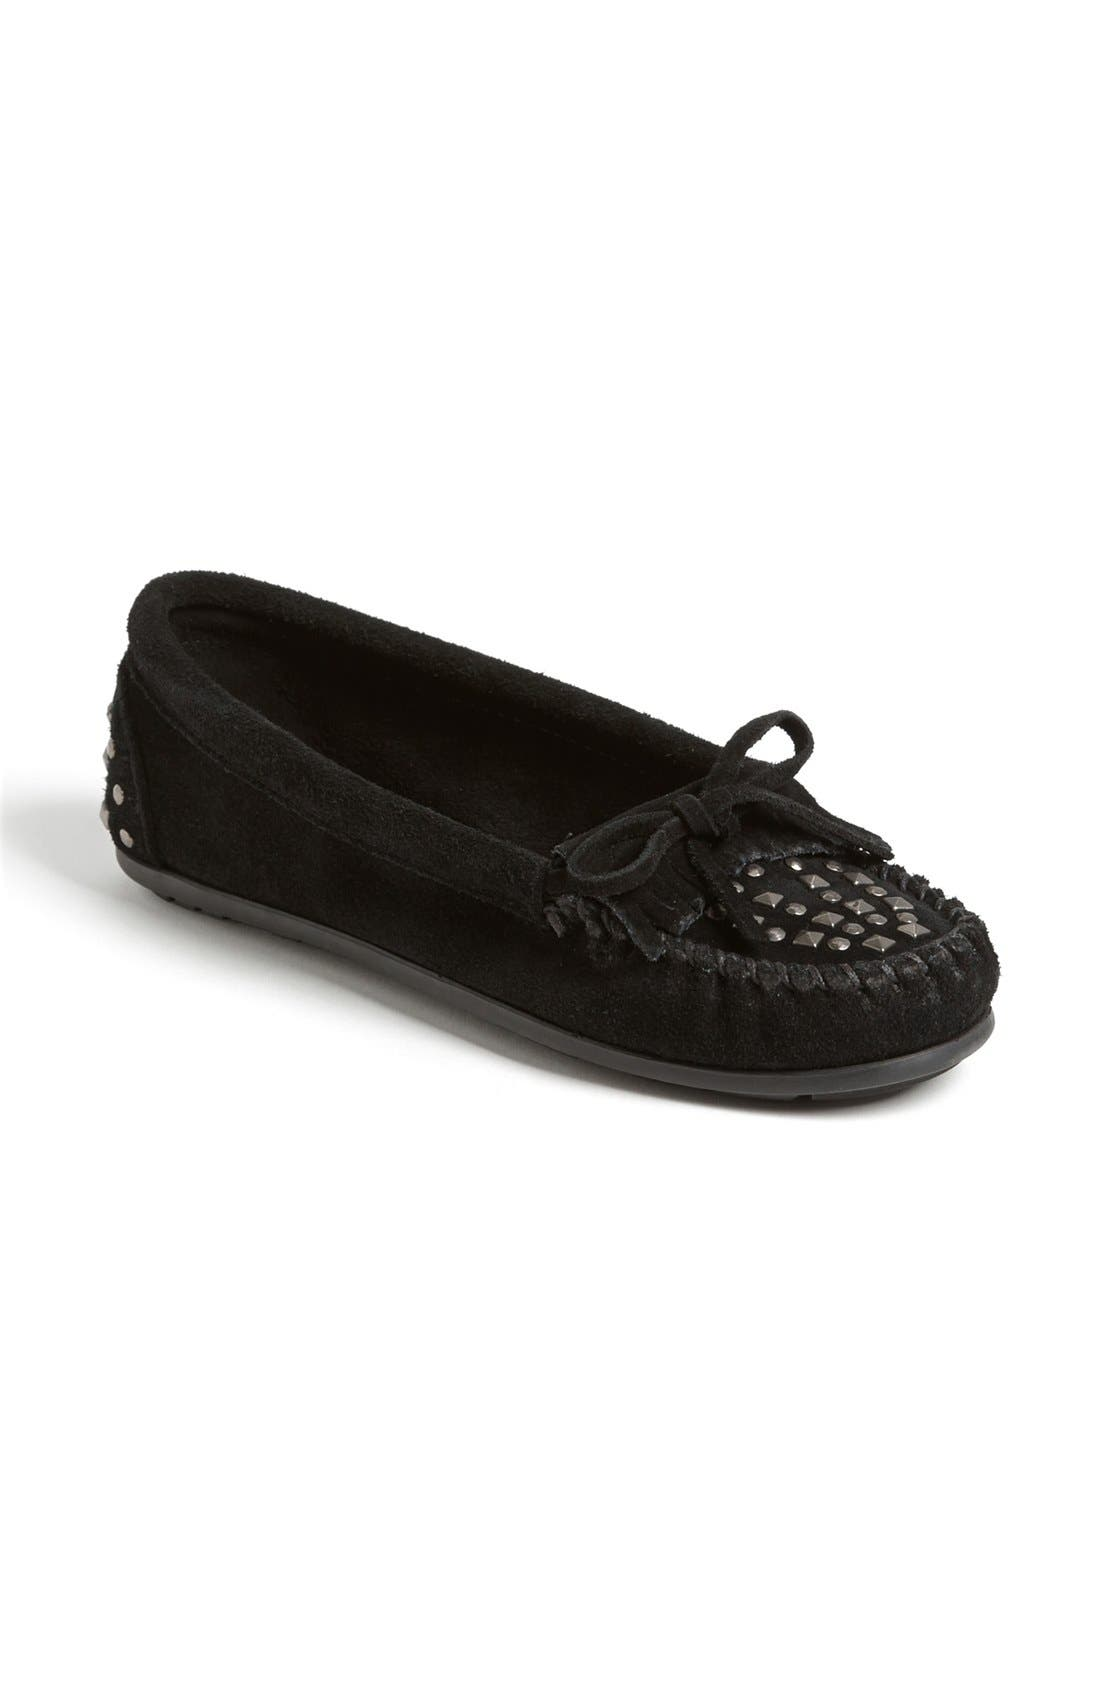 Alternate Image 1 Selected - Minnetonka Double Studded Moccasin (Regular Retail Price: $49.95)